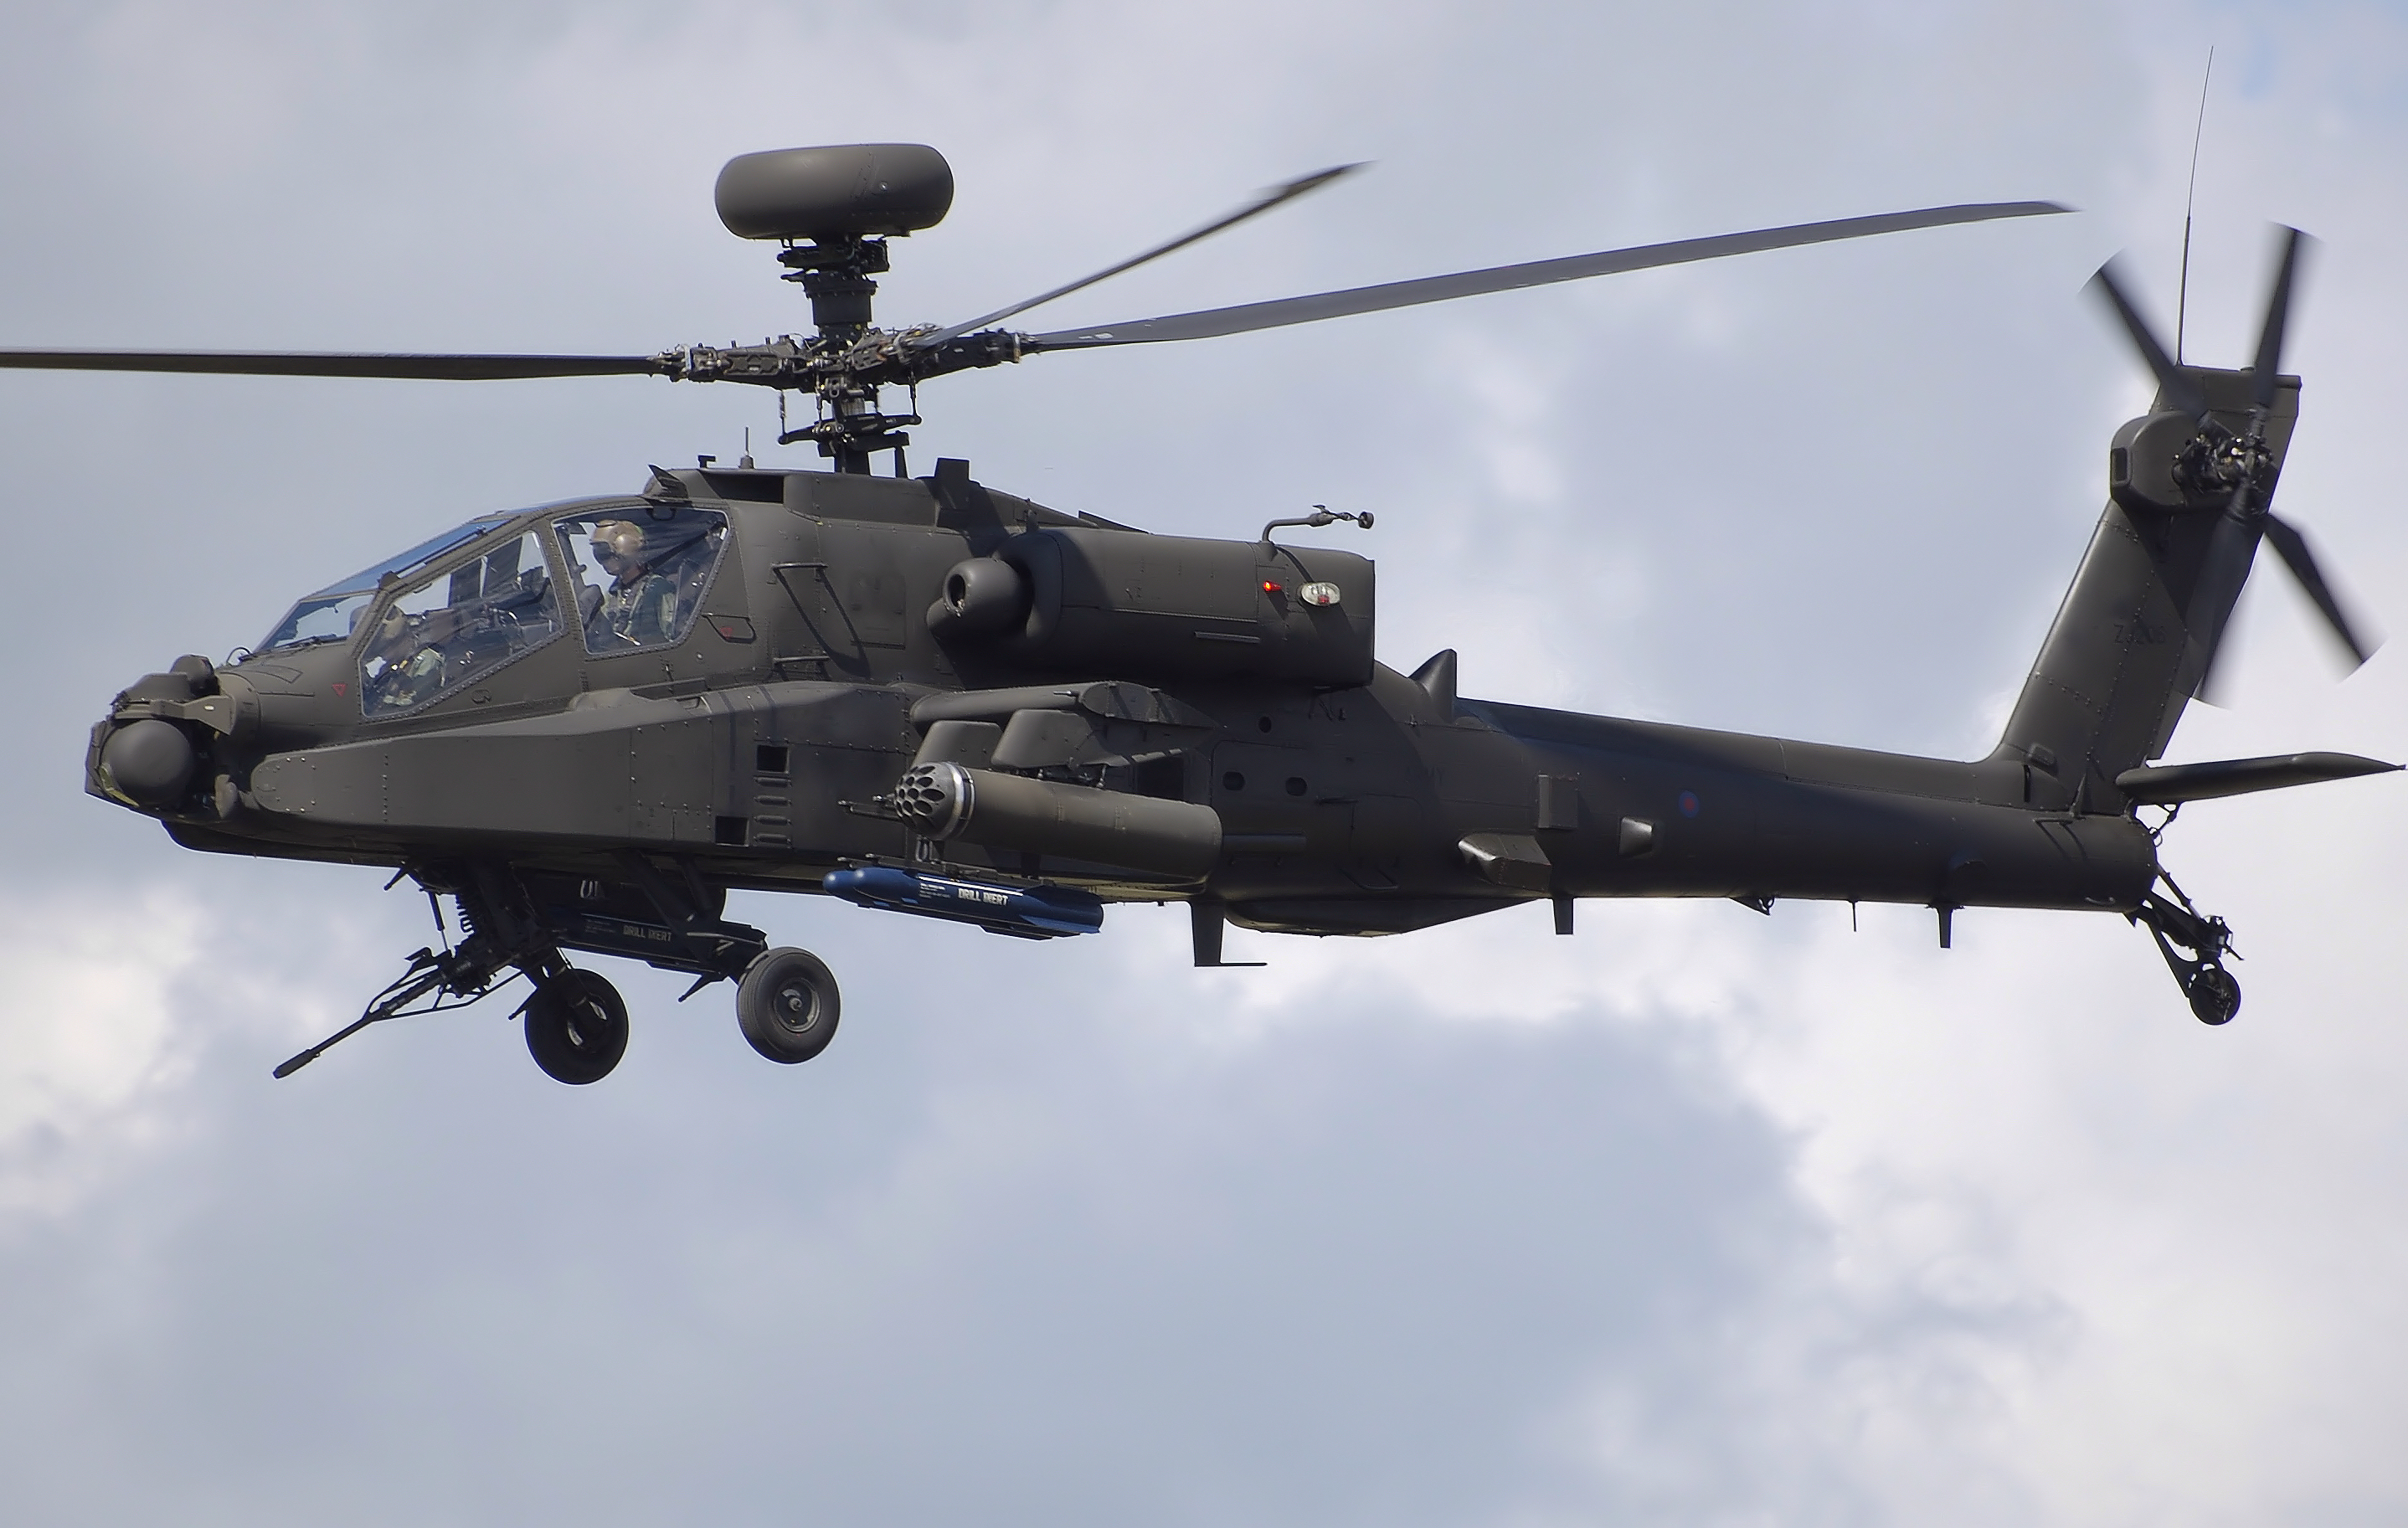 boeing ah-64 apache full hd wallpaper and background | 2876x1825